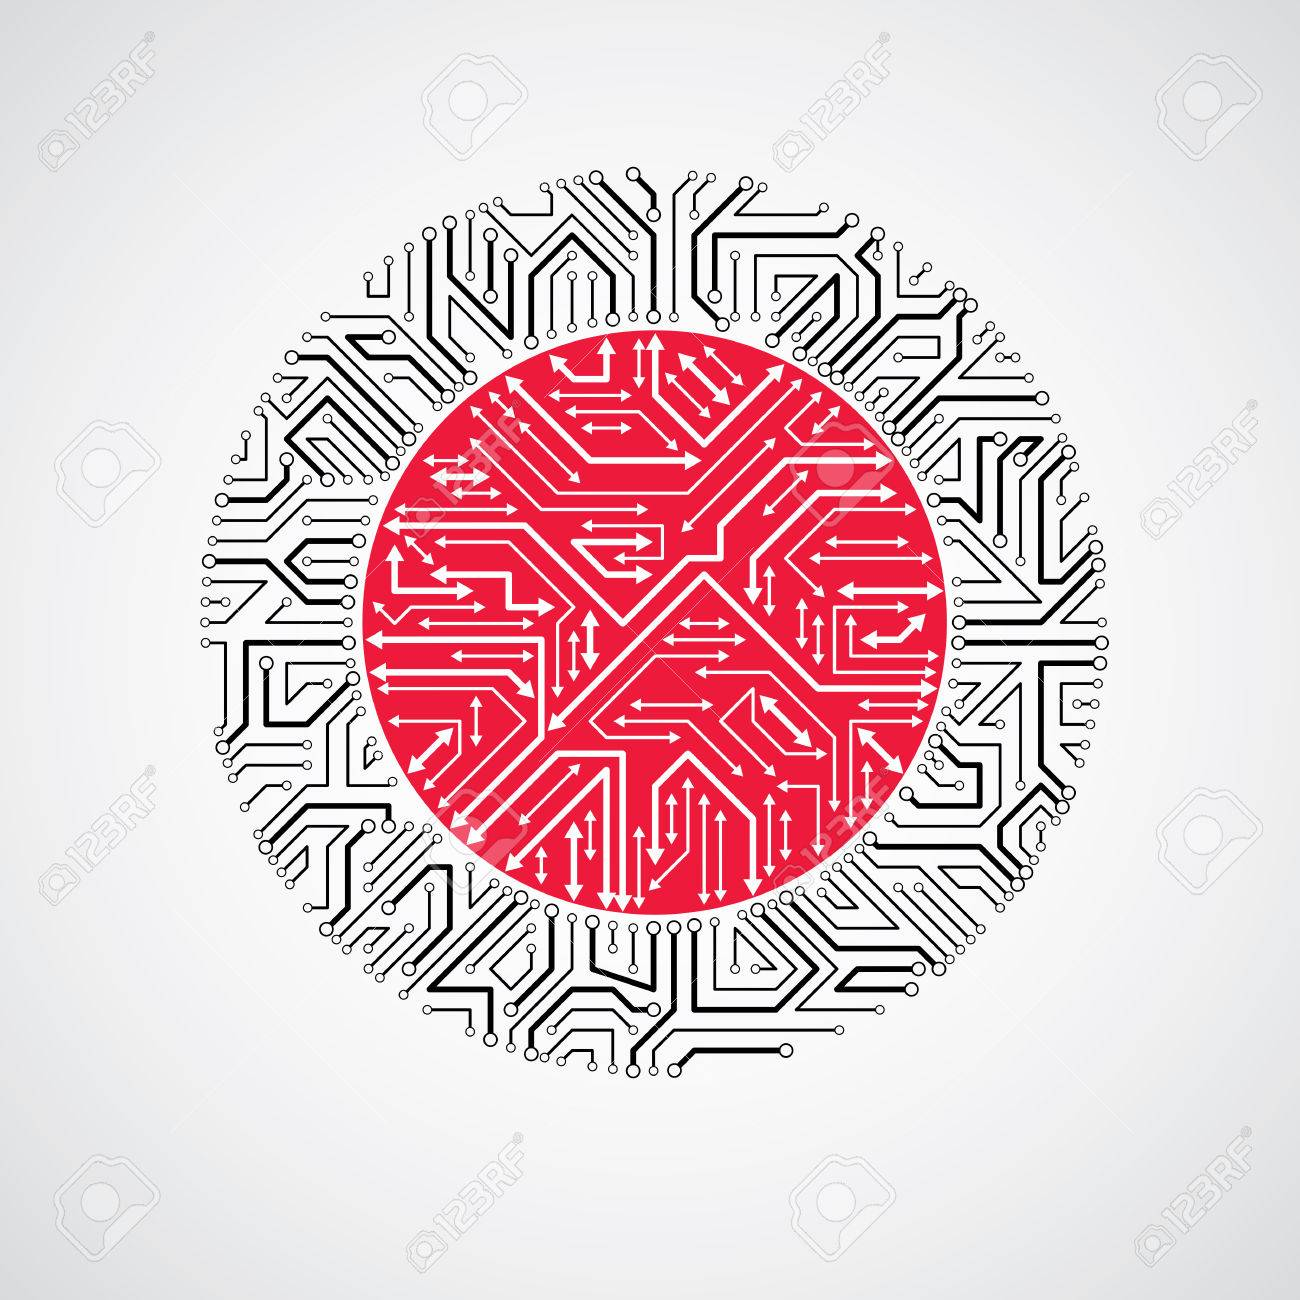 vector abstract puter circuit board red and black illustration Basic Electrical Schematics vector vector abstract puter circuit board red and black illustration round technology element with connections and arrows